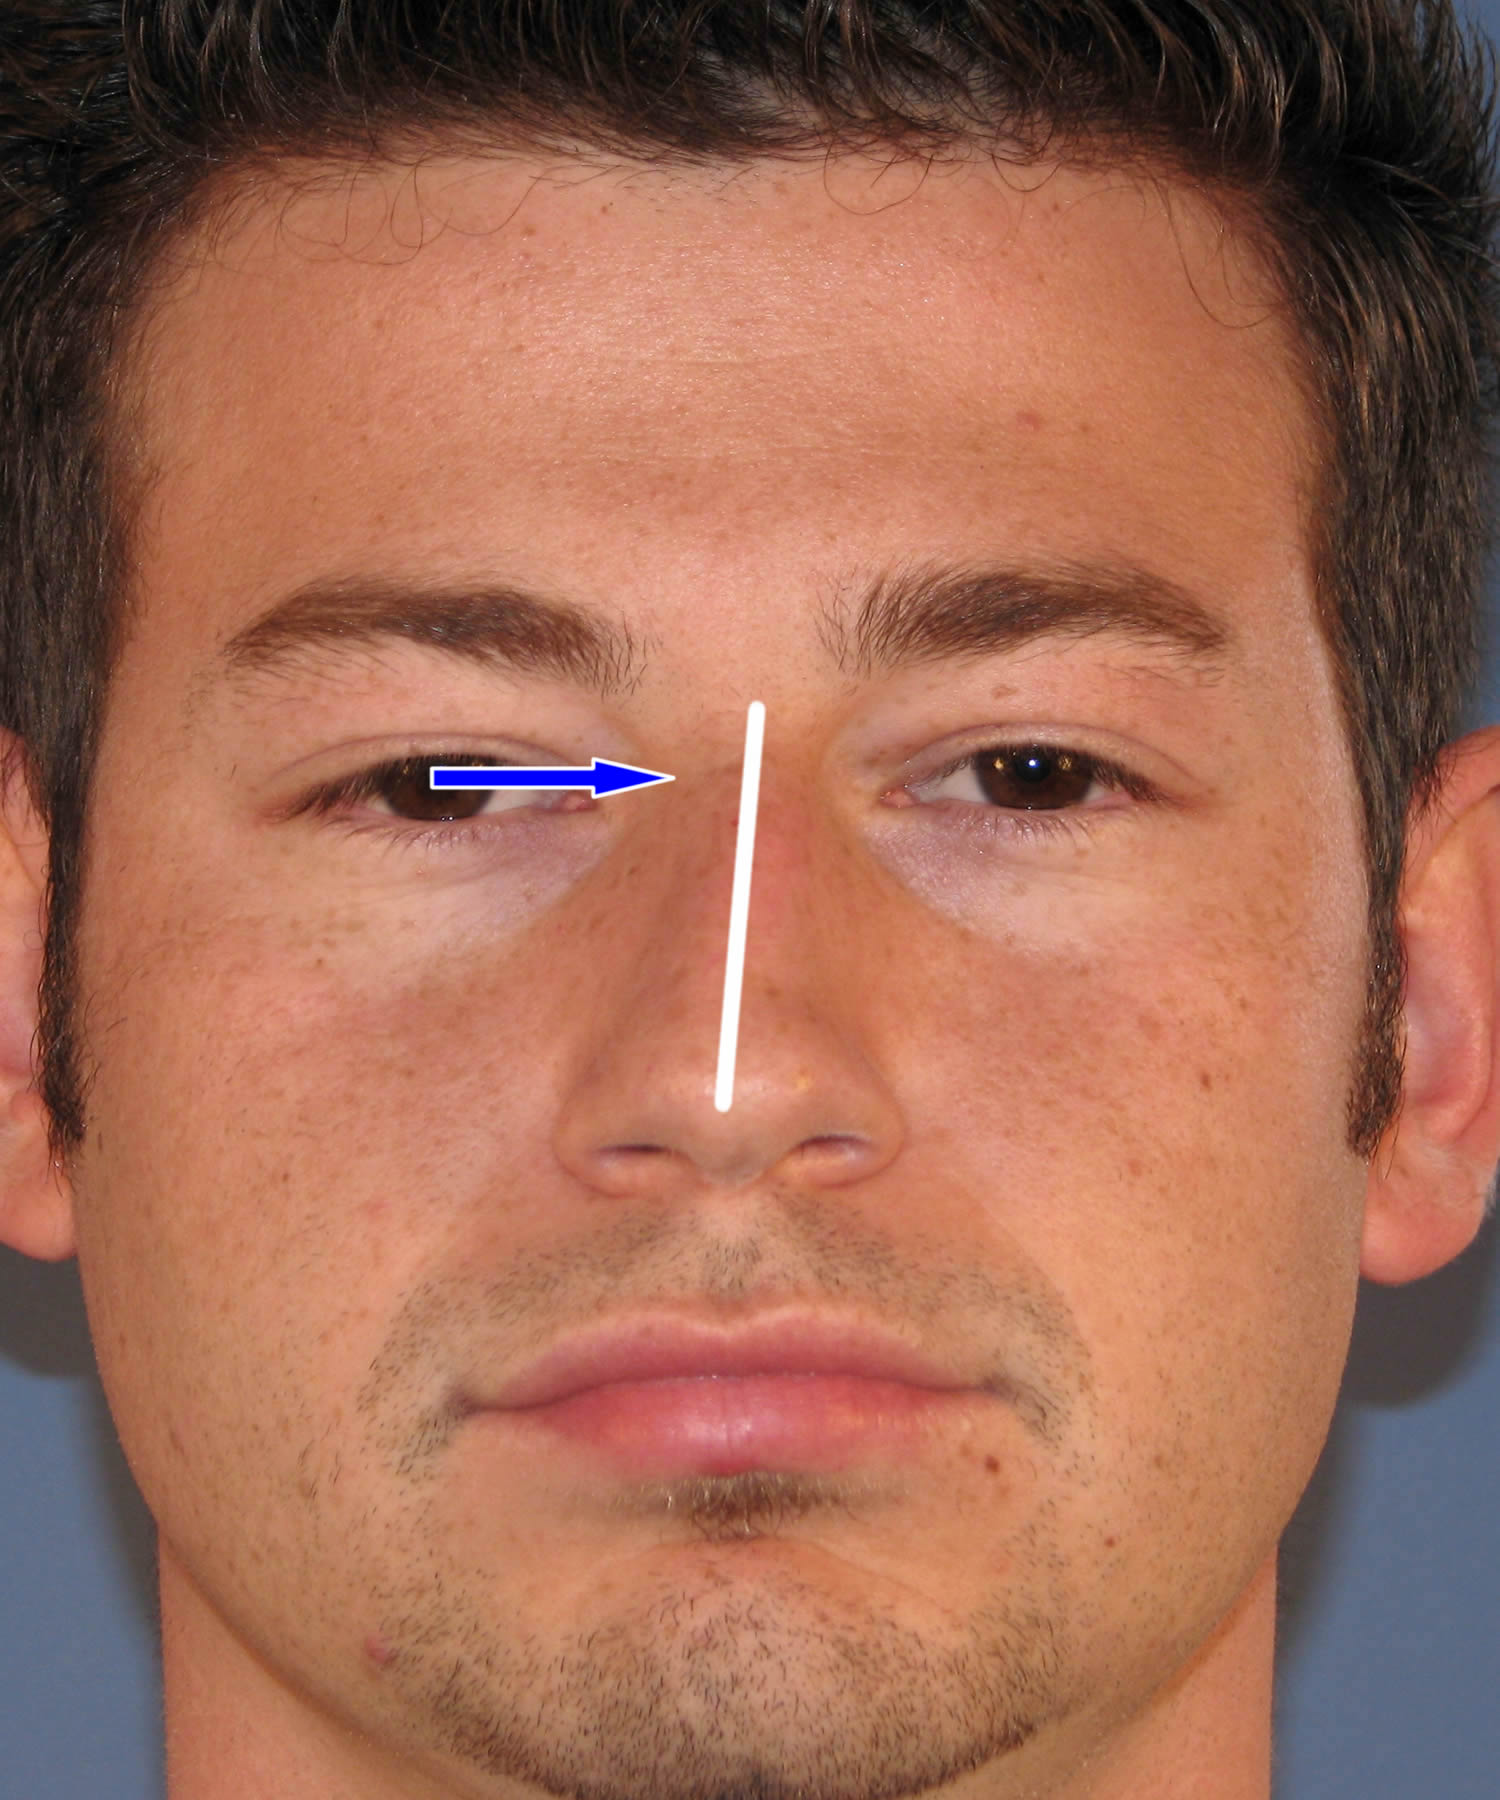 Pictures of Celebrities With Crooked Noses - #rock-cafe